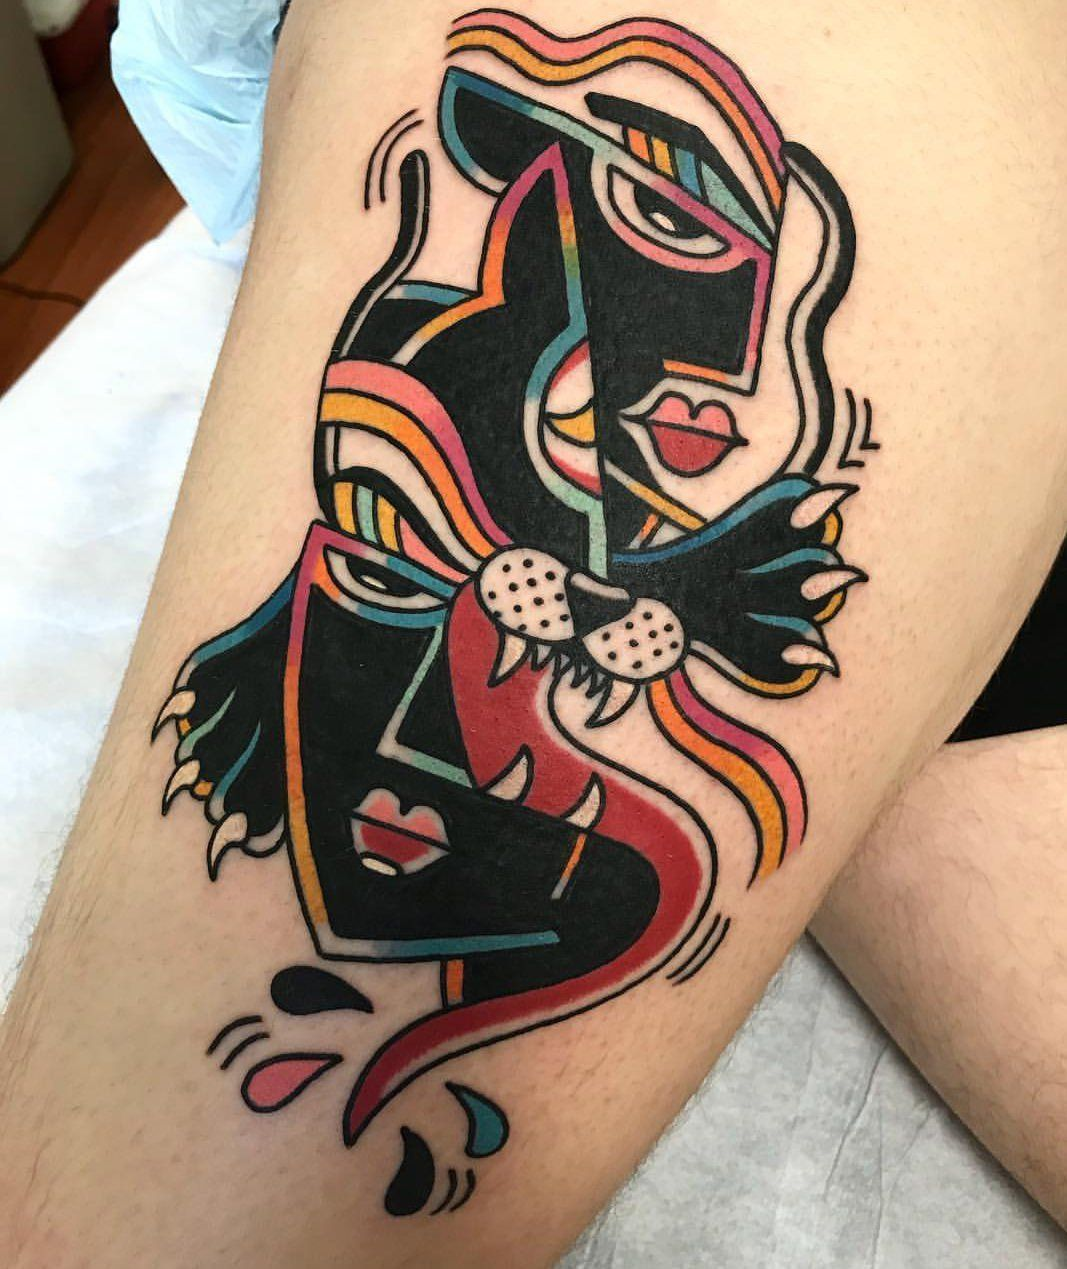 Deconstructed Panther Done by Joey Cassina at Ocean